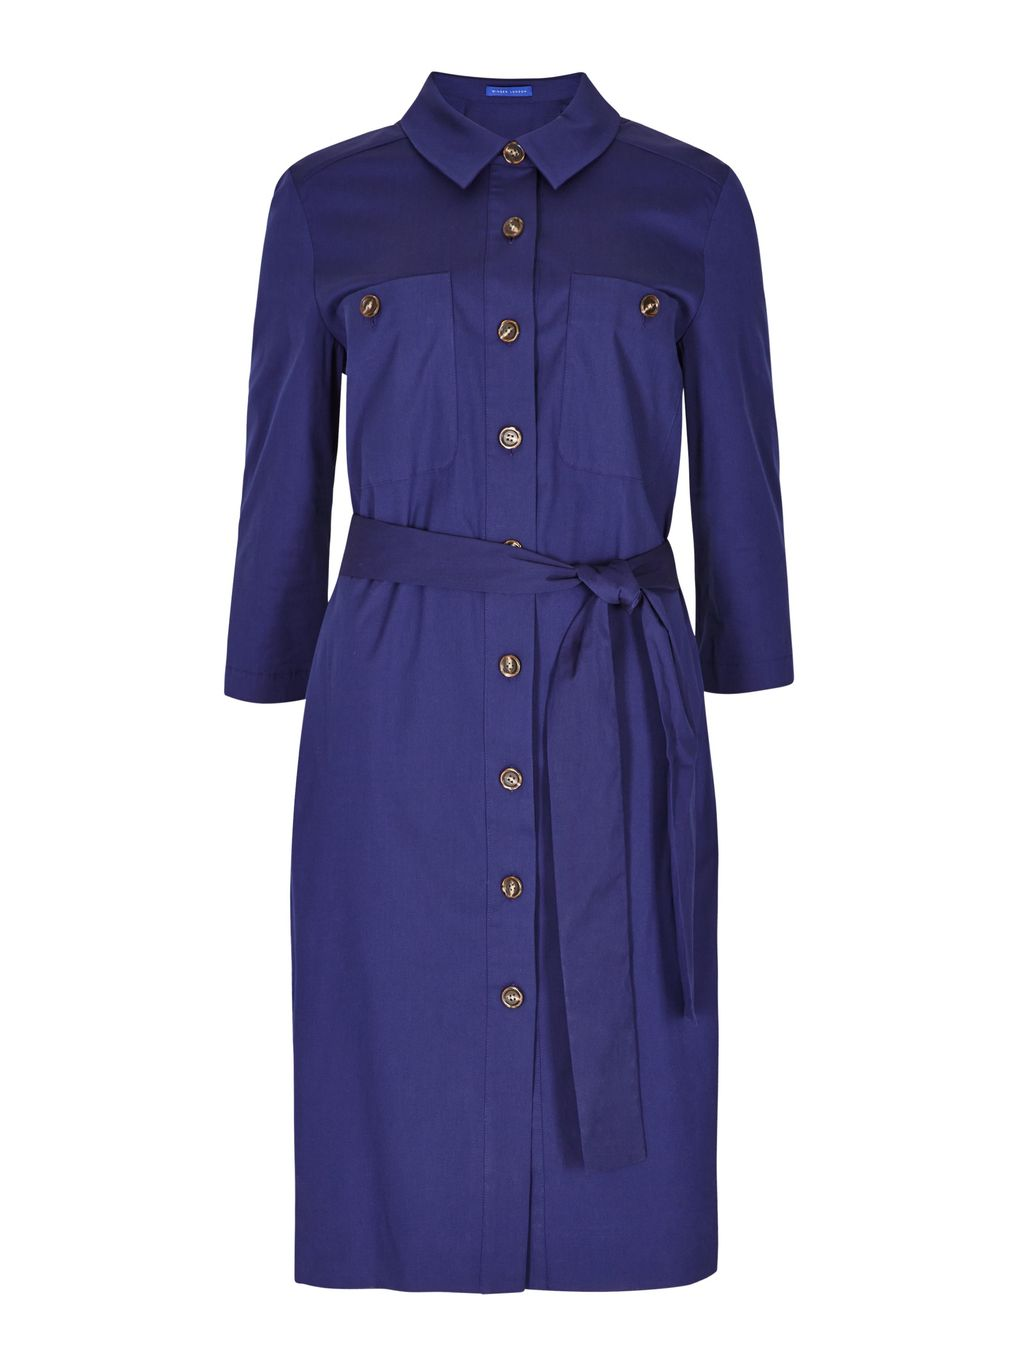 Cotton Poplin Shirt Dress, Navy - style: shirt; neckline: shirt collar/peter pan/zip with opening; pattern: plain; waist detail: belted waist/tie at waist/drawstring; predominant colour: navy; occasions: casual; length: on the knee; fit: body skimming; fibres: cotton - 100%; sleeve length: 3/4 length; sleeve style: standard; texture group: cotton feel fabrics; pattern type: fabric; season: s/s 2016; wardrobe: basic